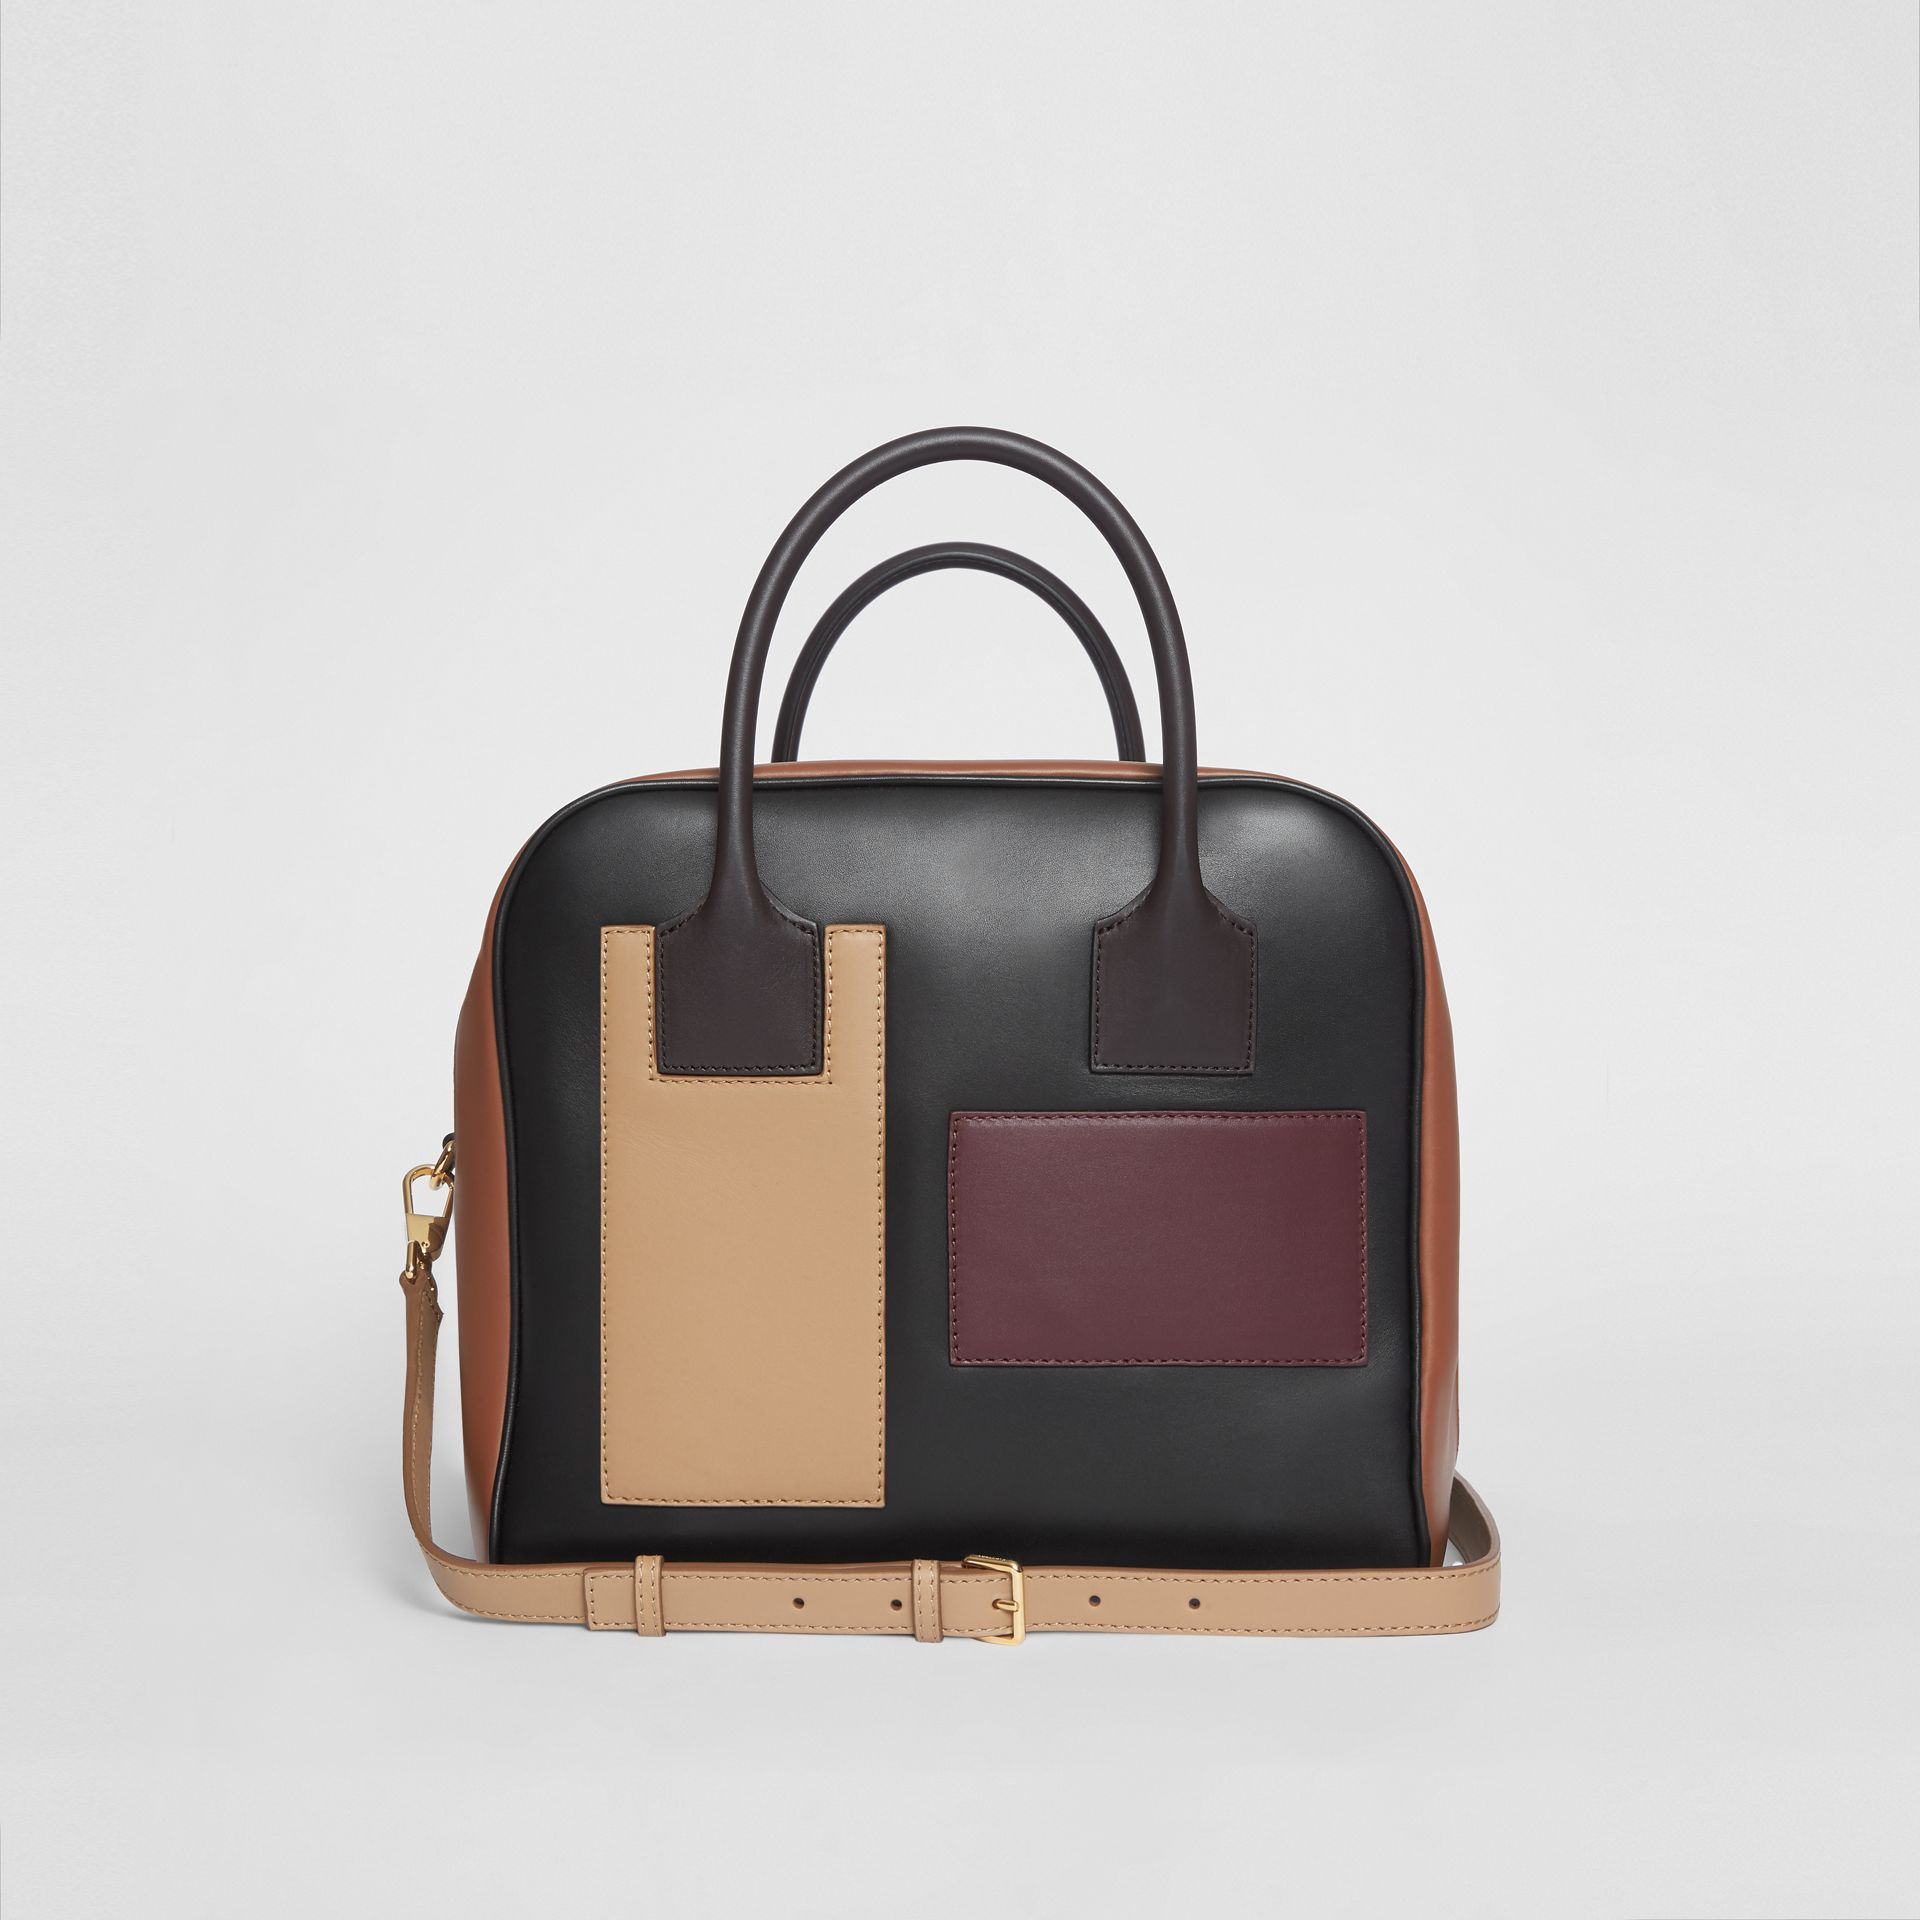 Medium Panelled Leather Cube Bag in Black - Women | Burberry Canada - gallery image 7